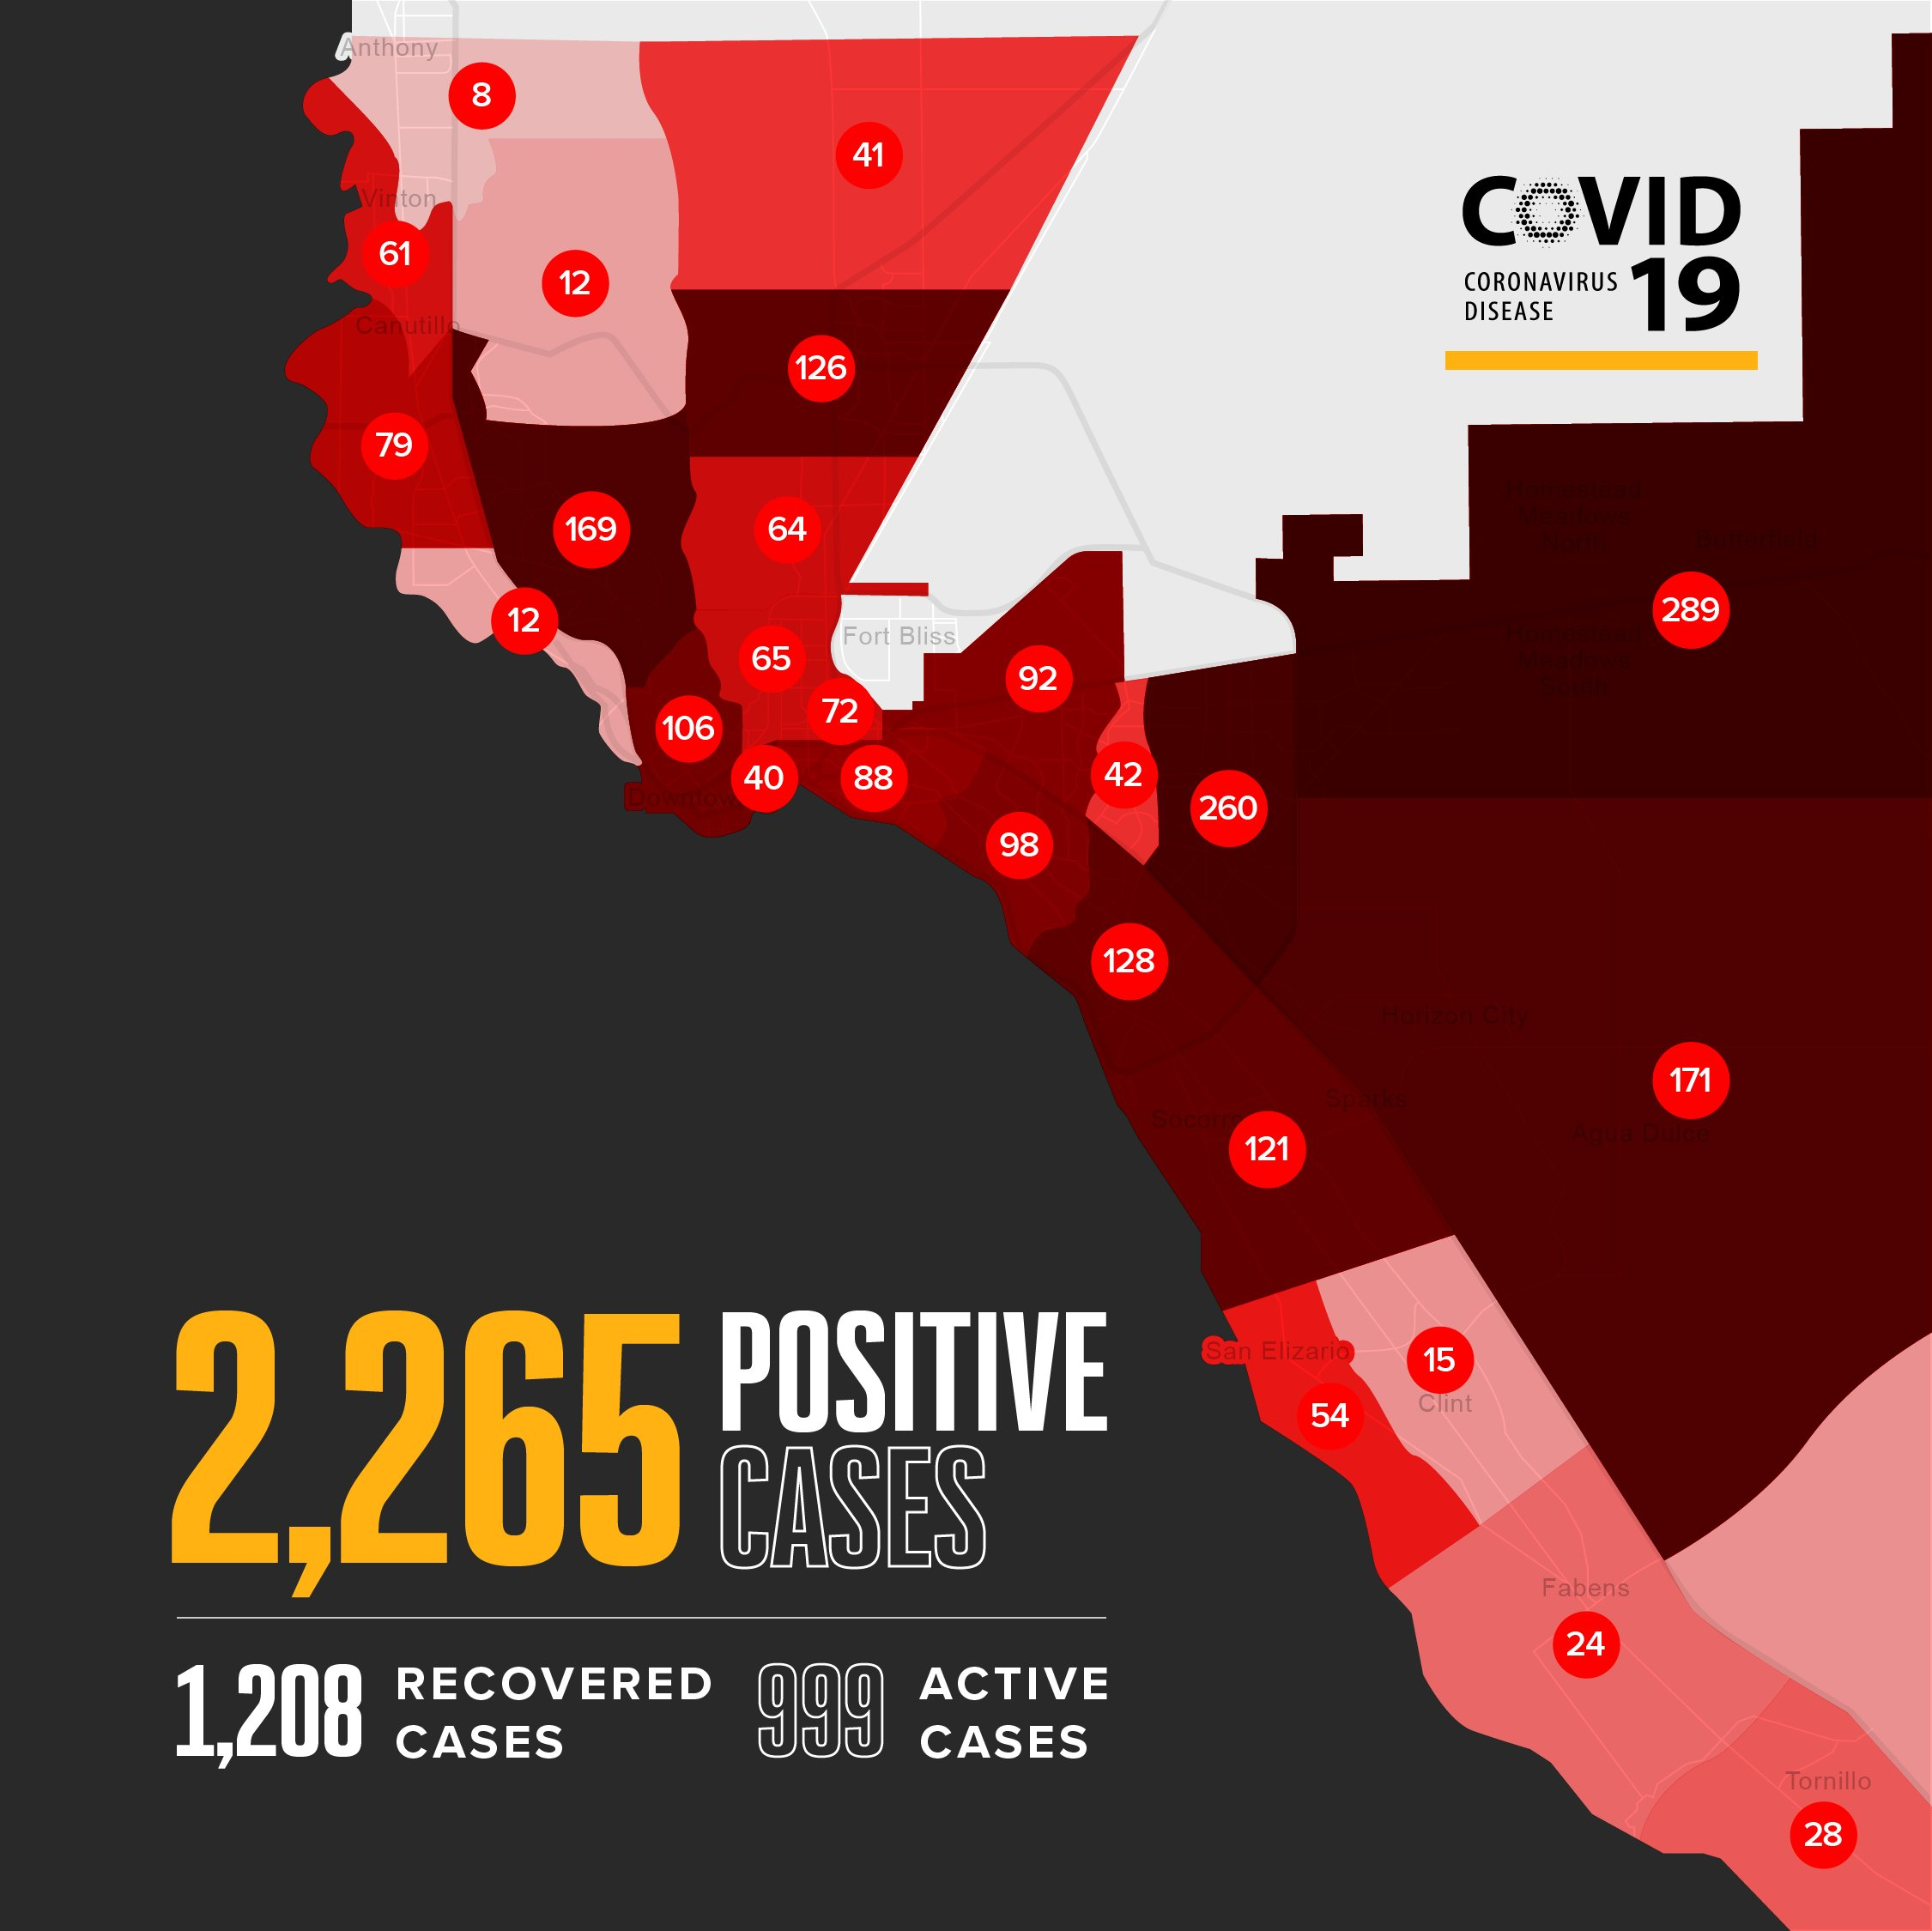 The map above shows the amount of positive COVID-19 cases by ZIP codes and the number of cases in parenthesis: 79821 (8), 79835 (61), 79836 (15), 79838 (24), 79849 (54), 79853 (28), 79901 (40), 79902 (106), 79903 (72), 79904 (64), 79905 (88), 79907 (128), 79911 (12), 79912 (169), 79915 (98), 79922 (12), 79924 (126), 79925 (92), 79927 (121), 79928 (171), 79930 (65), 79932 (79), 79934 (41), 79935 (42), 79936 (260), 79938 (289)